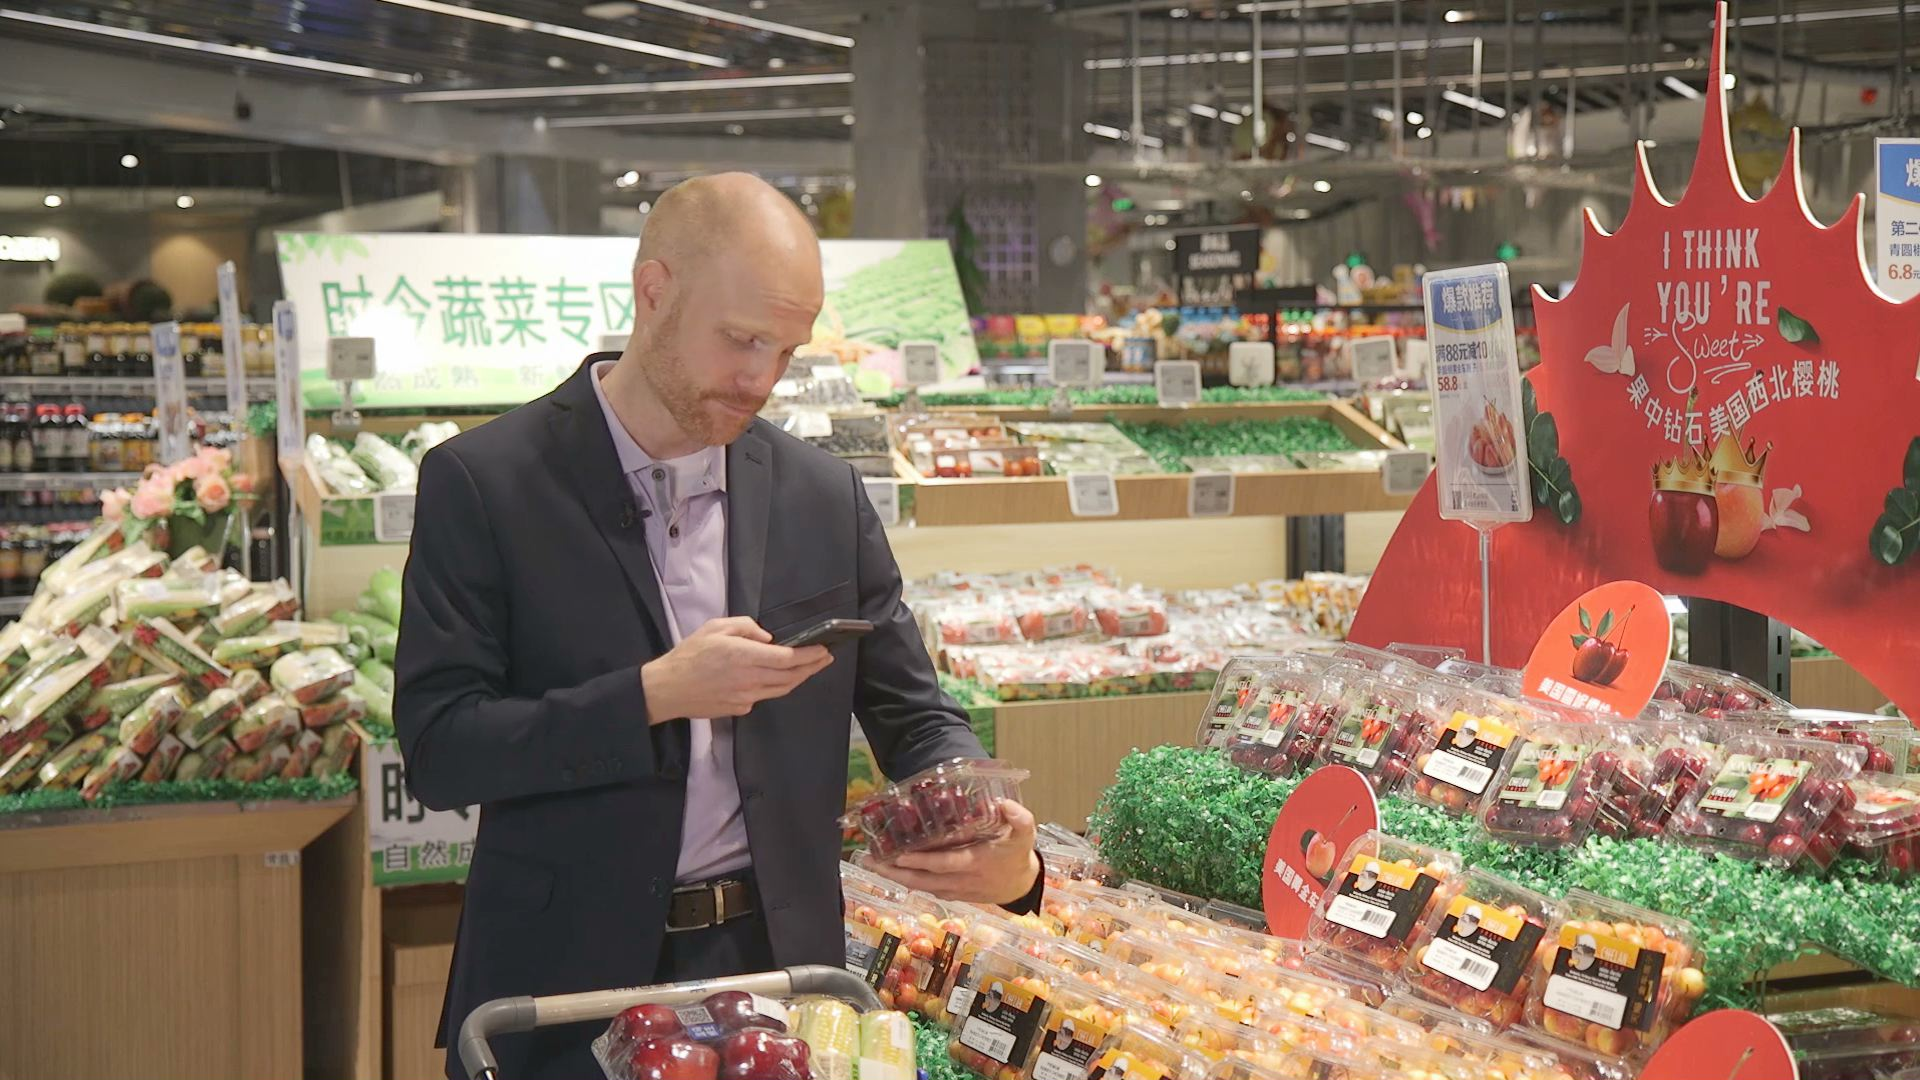 Take a Tour of a Freshippo Supermarket and Experience 'New